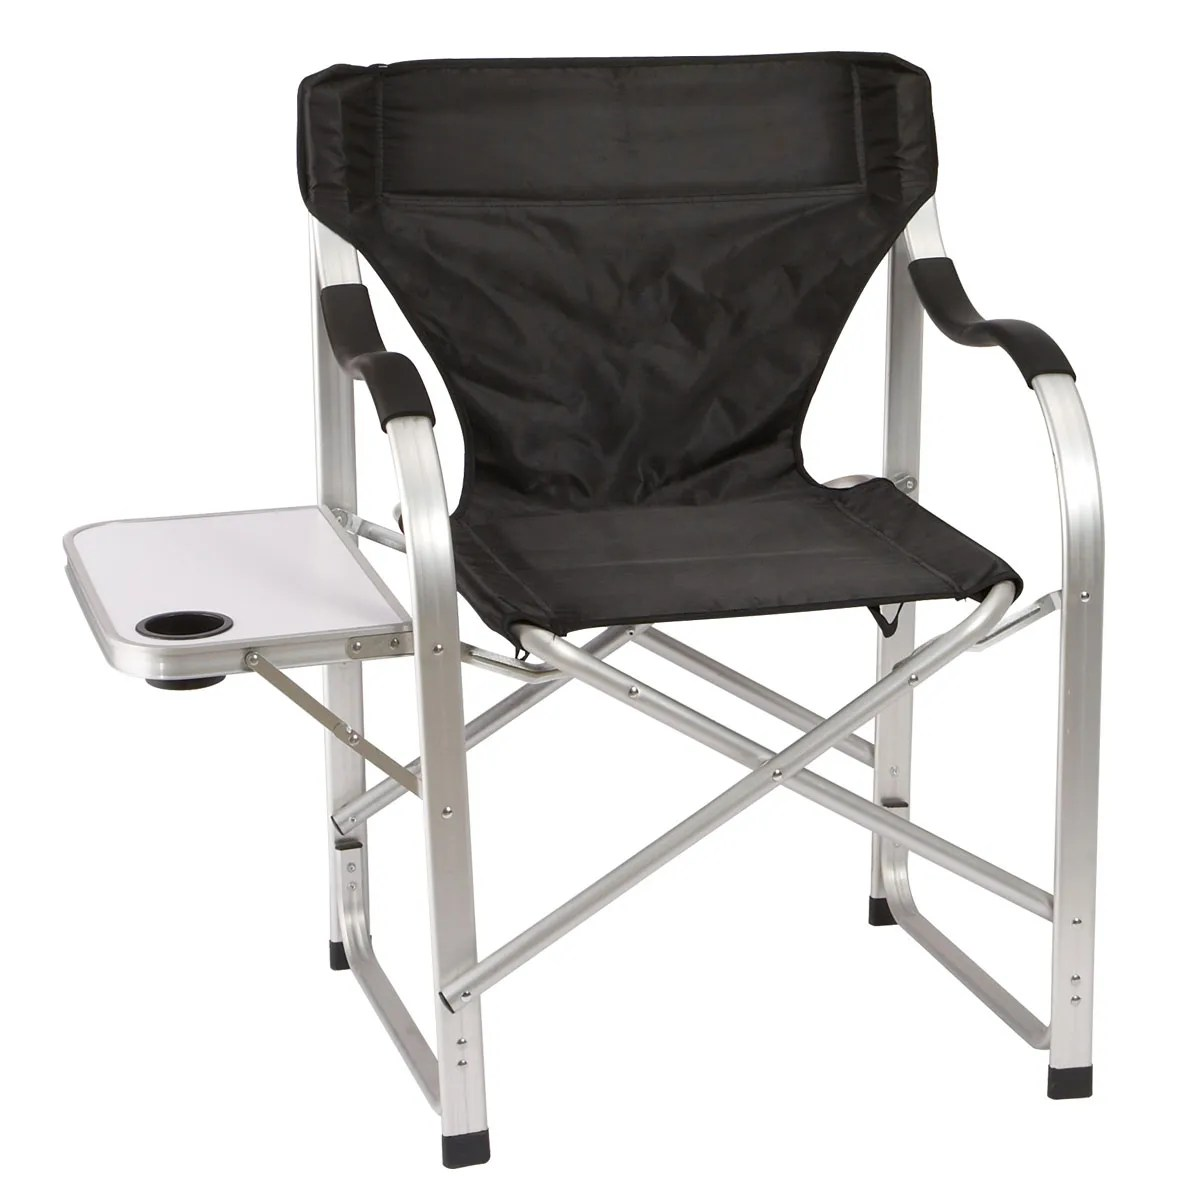 Collapsible Chair Heavy Duty Collapsible Lawn Chair